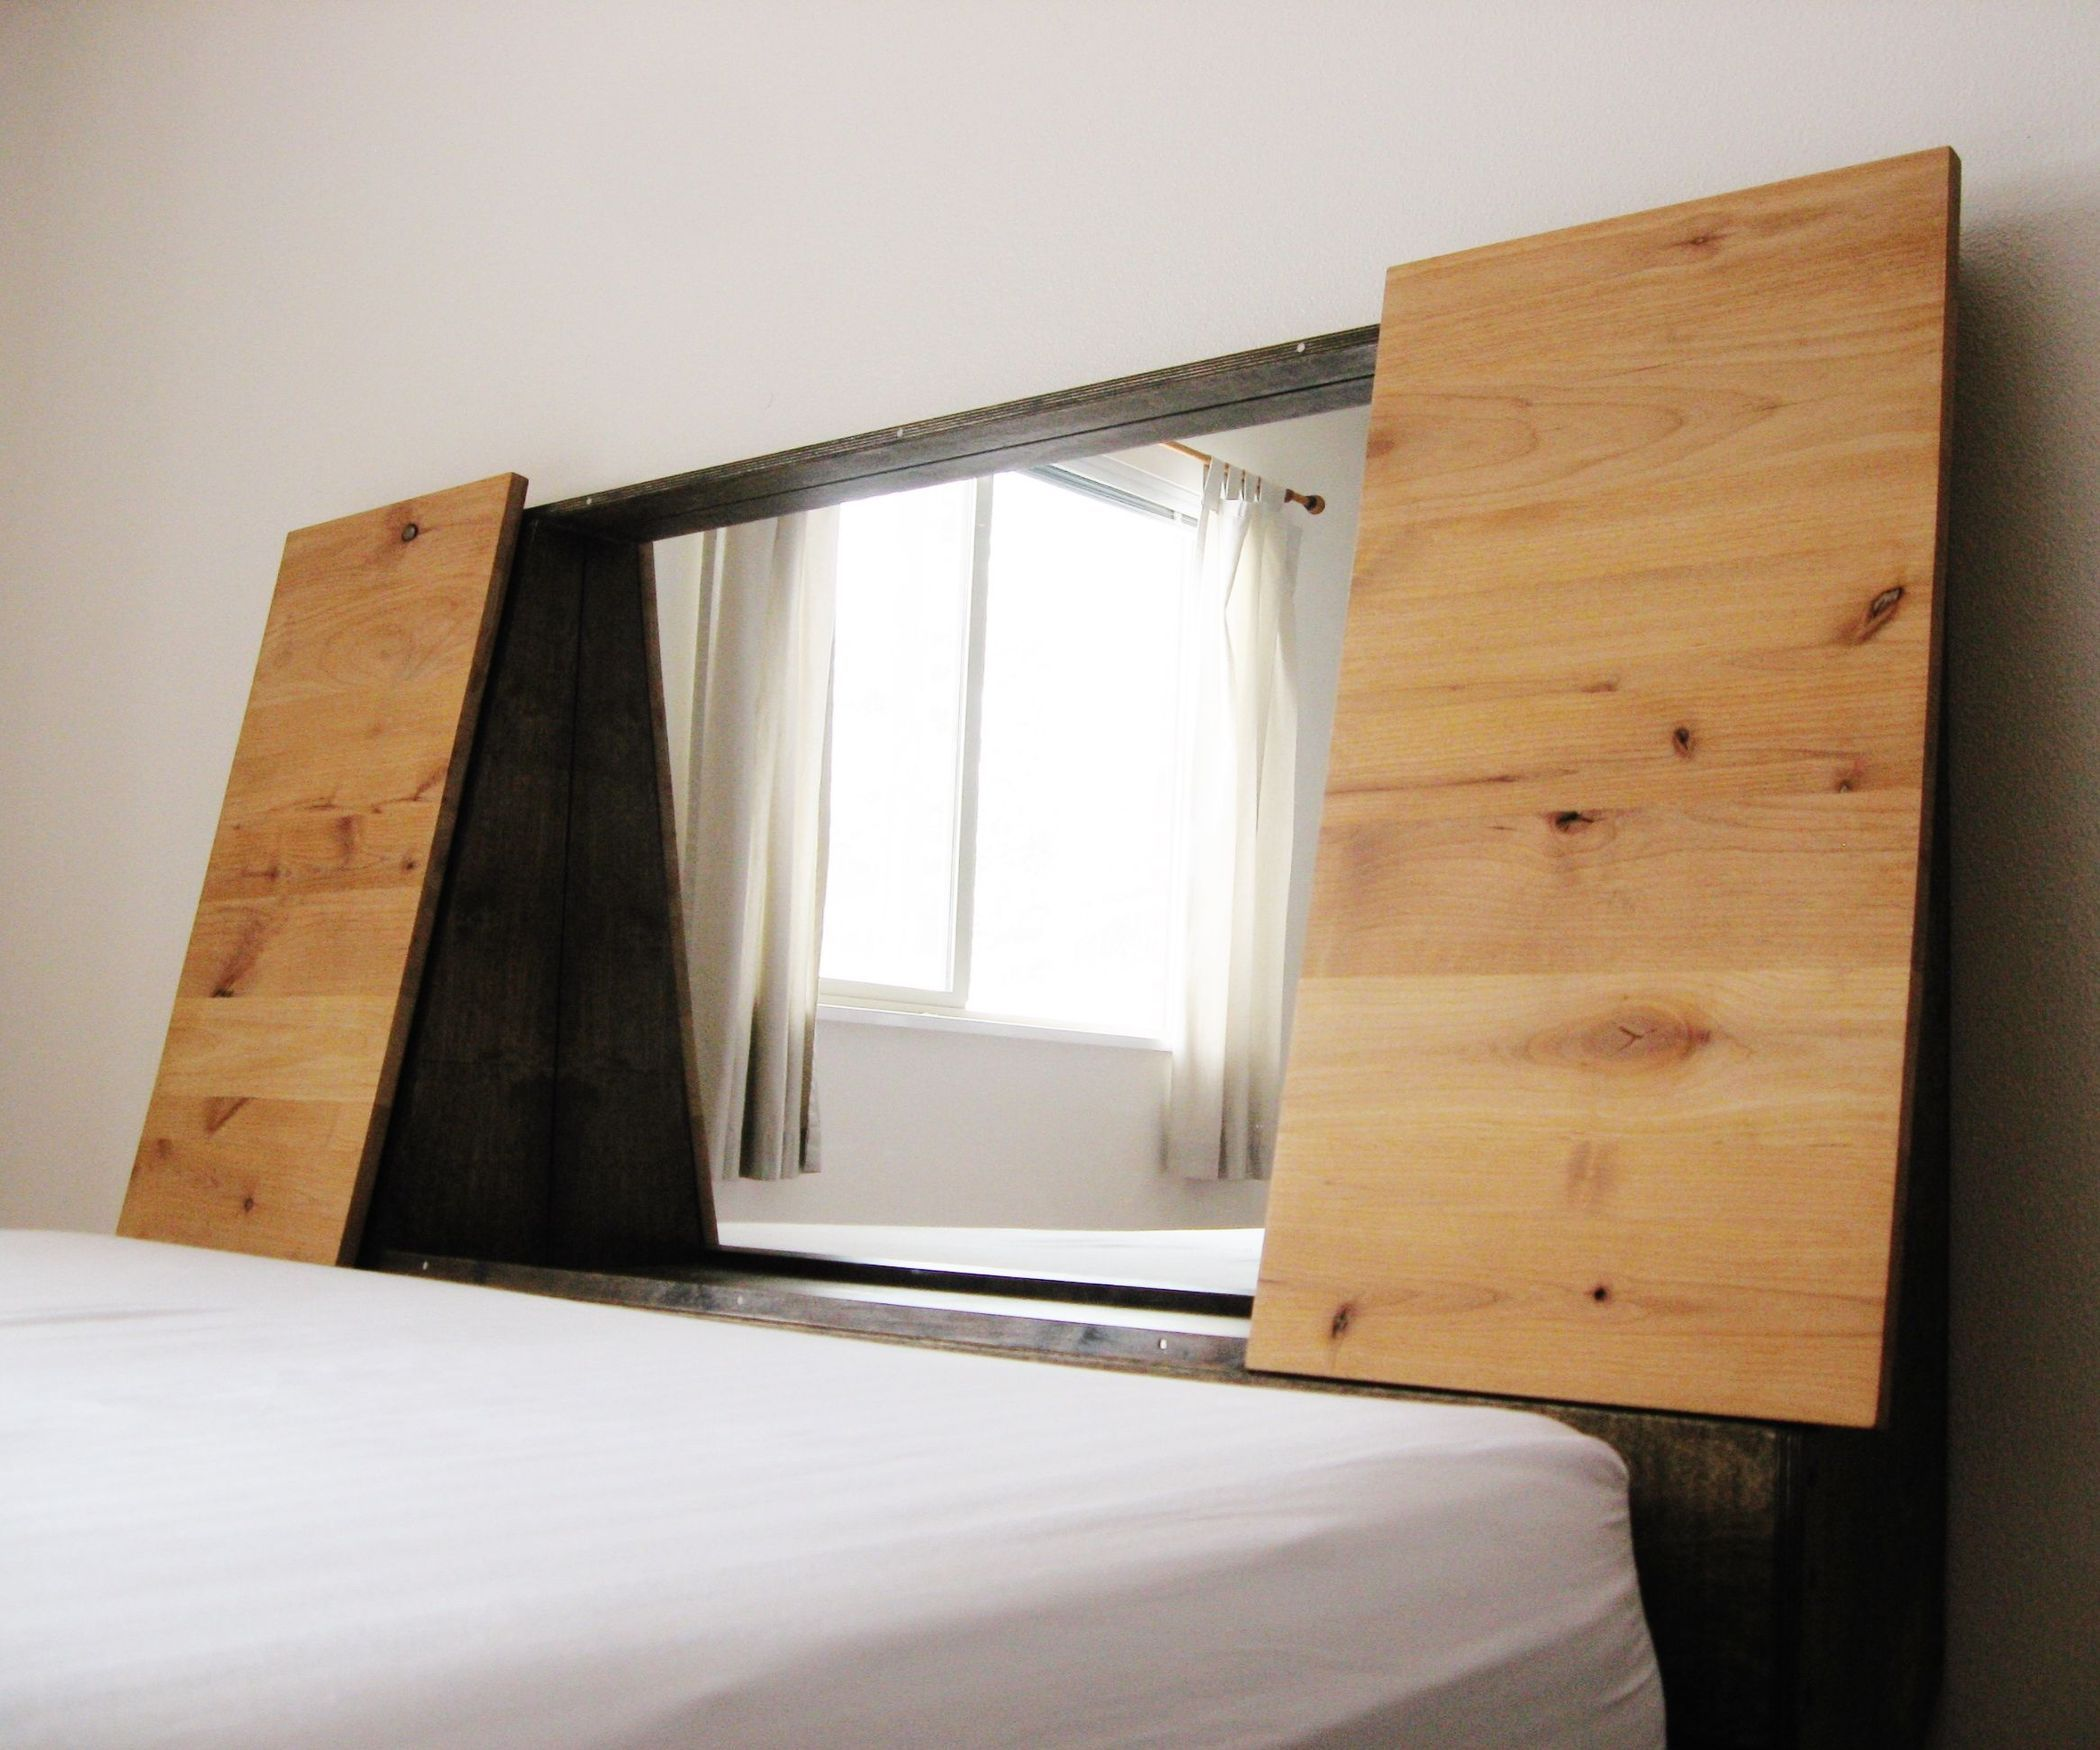 The Ultimate Headboard secret partments & More